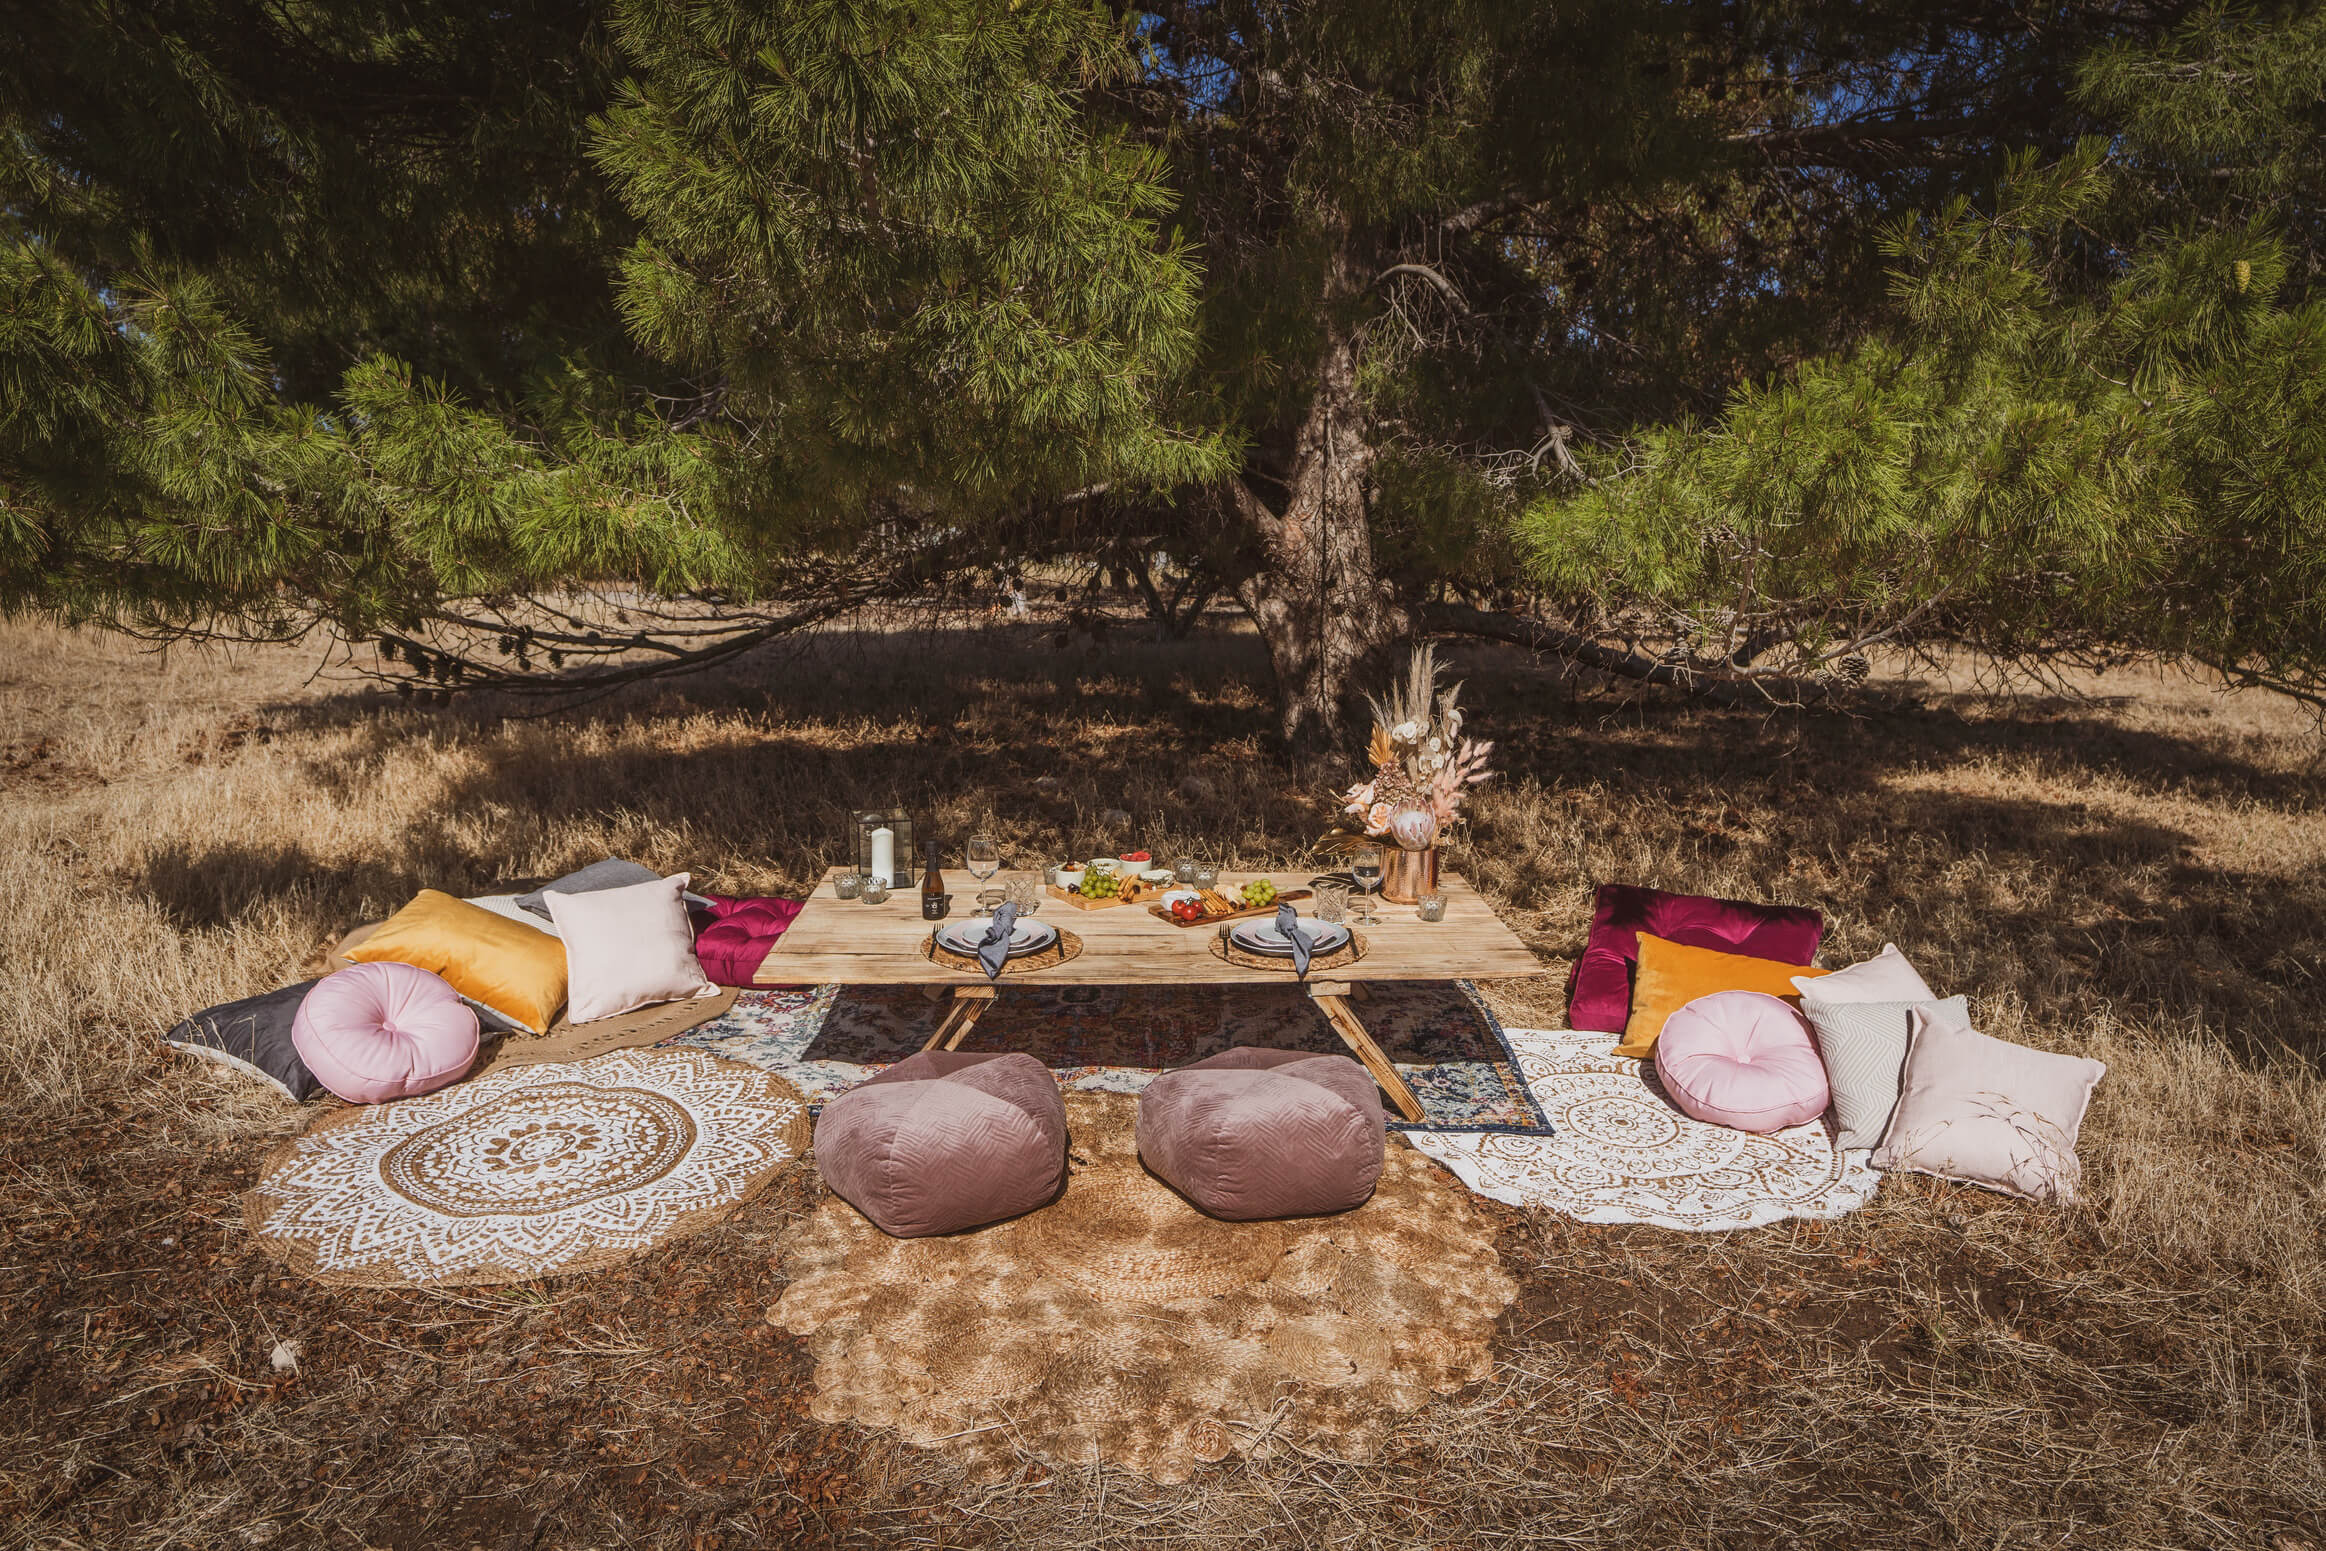 Picnic table with rugs and cushions (table styling can be added - please request quote)